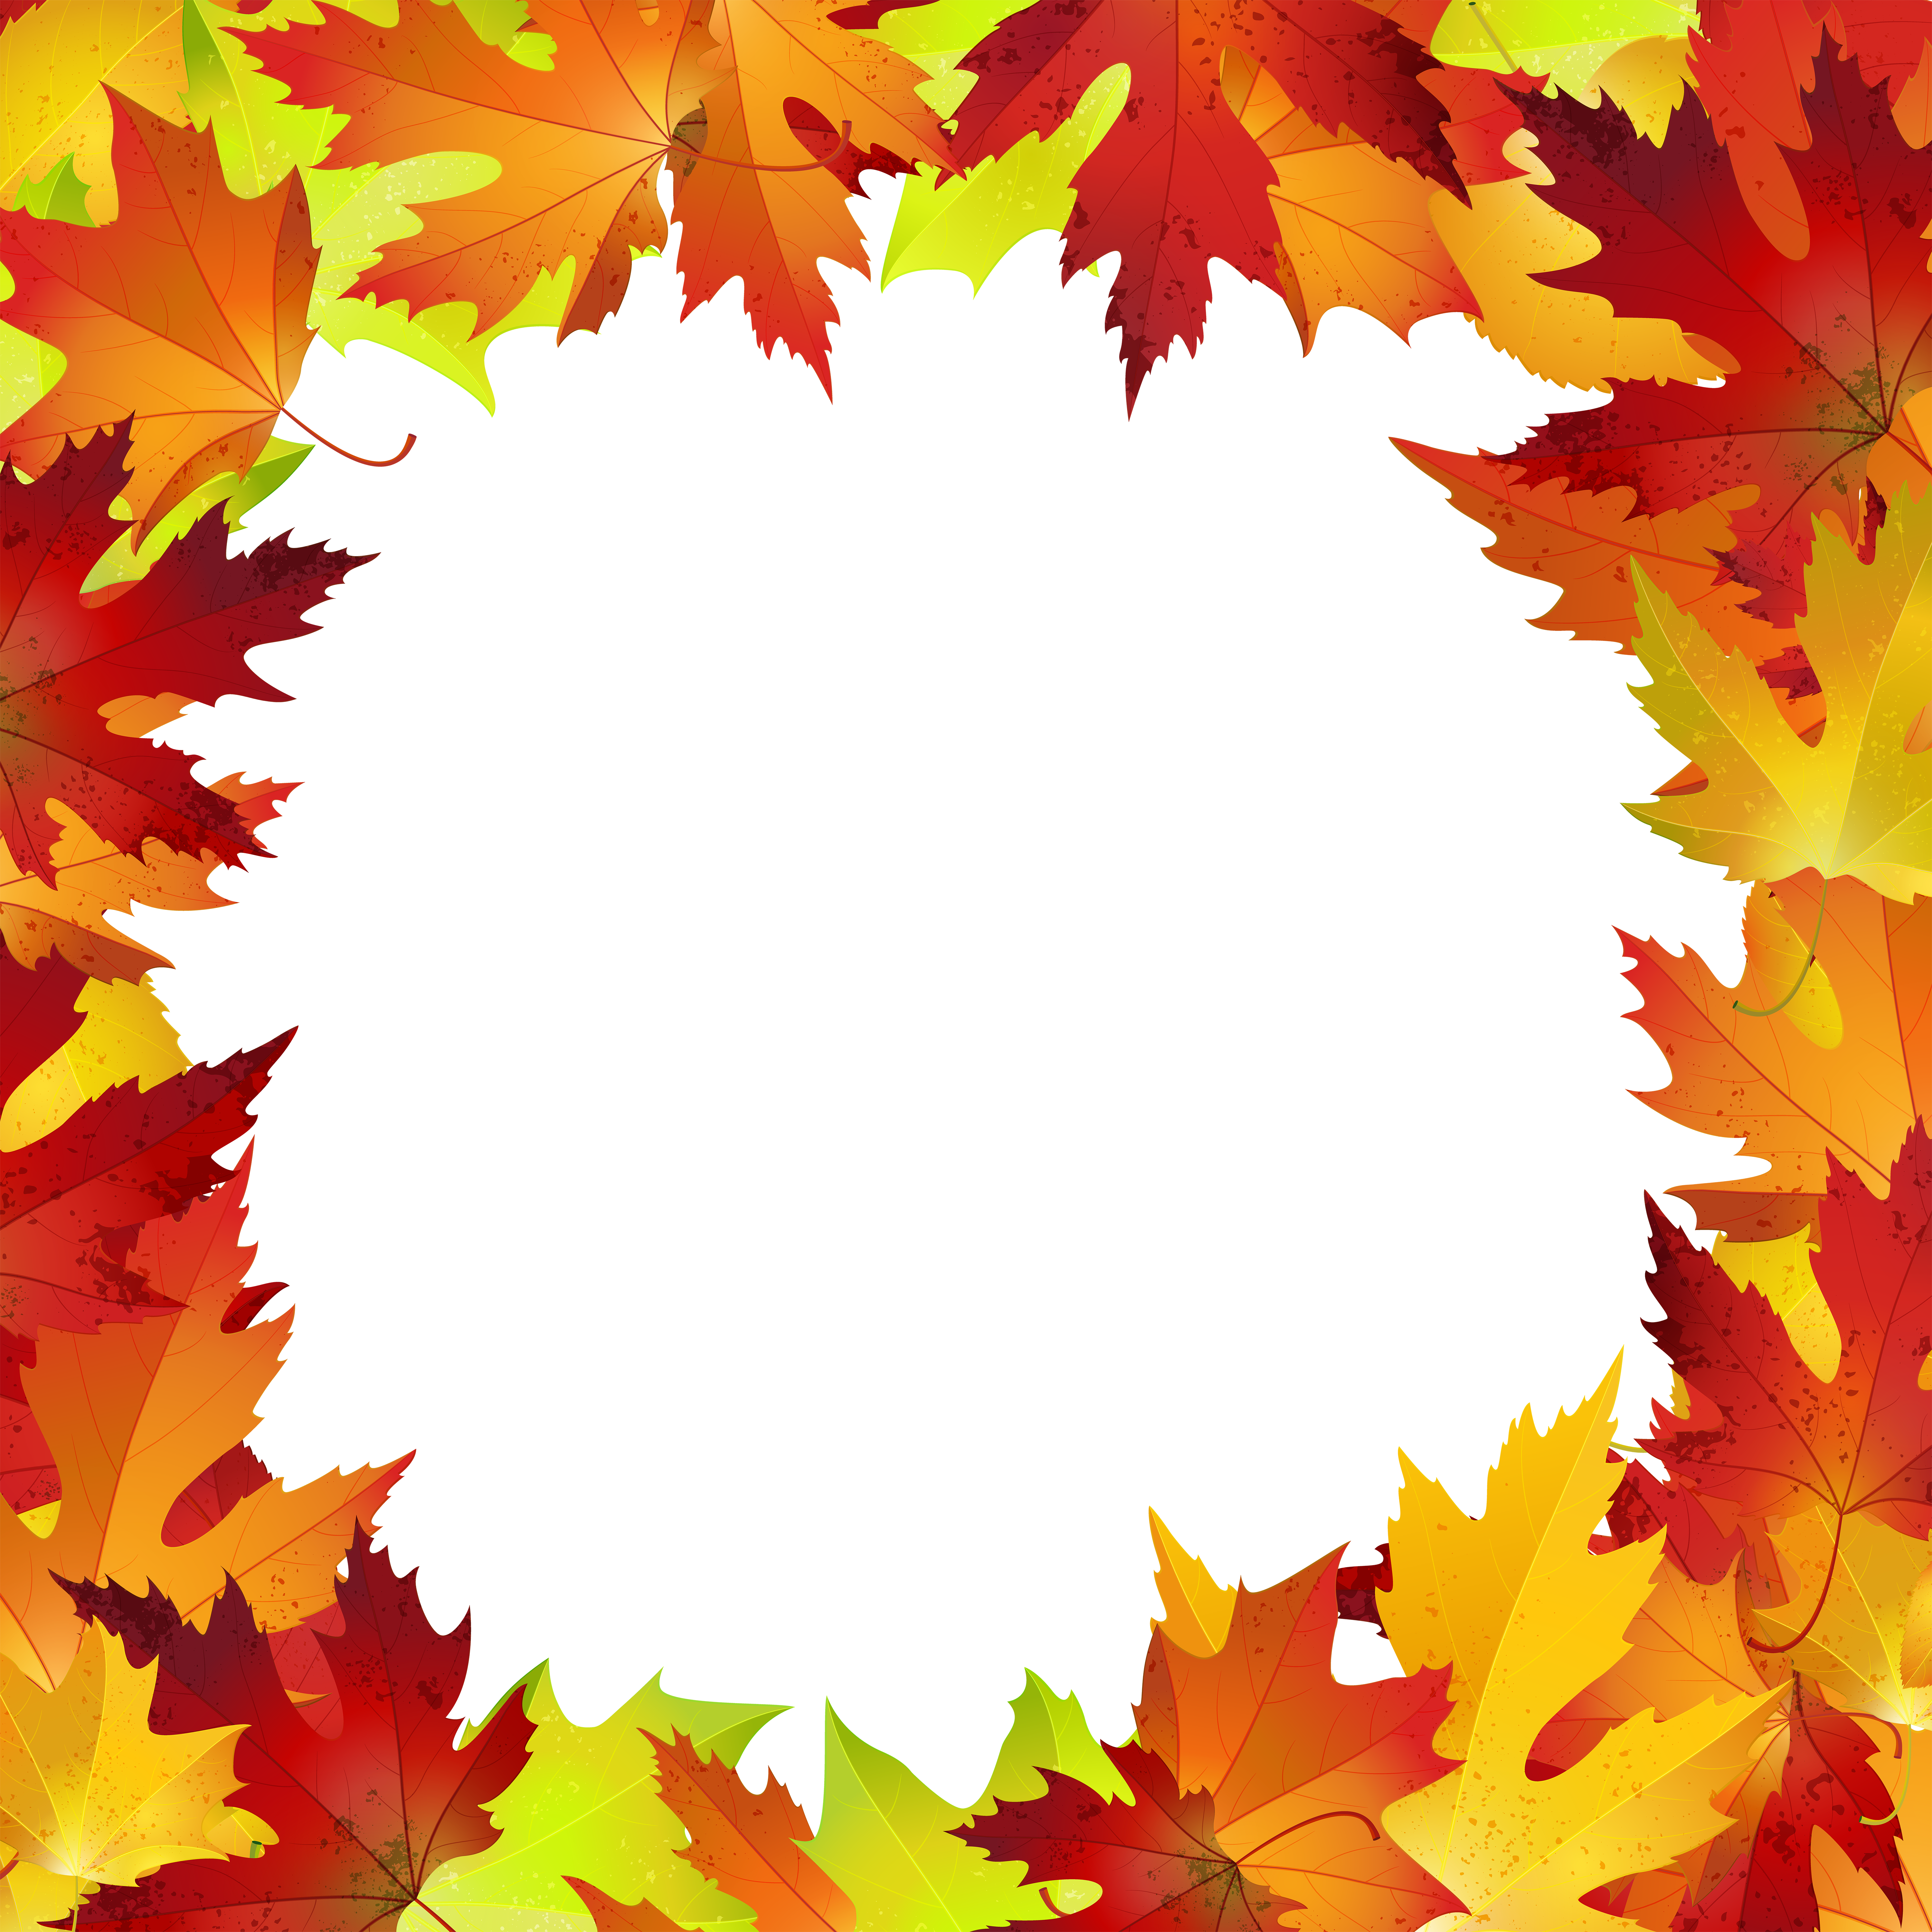 Fall leaves border png. Autumn clip art image